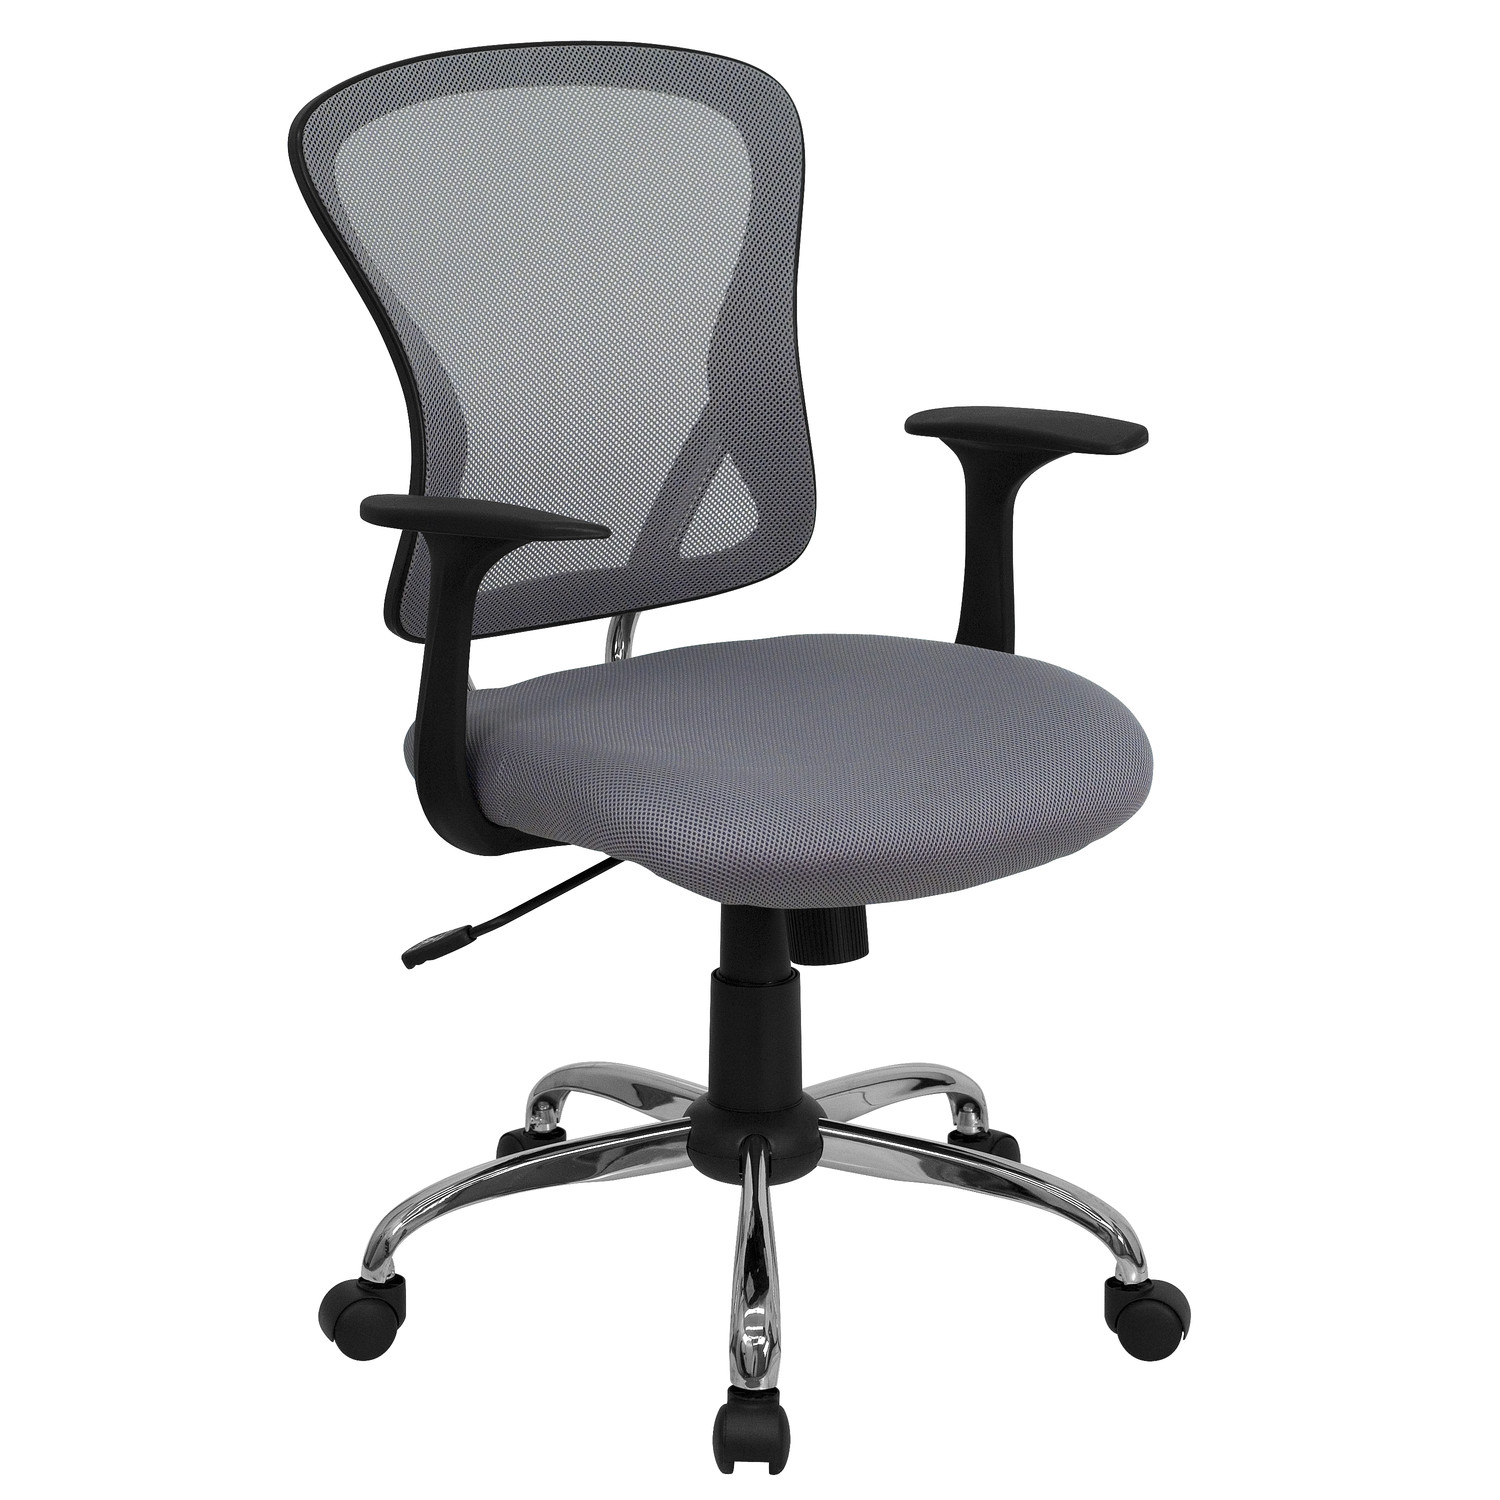 3 Best affordable office chairs under $100